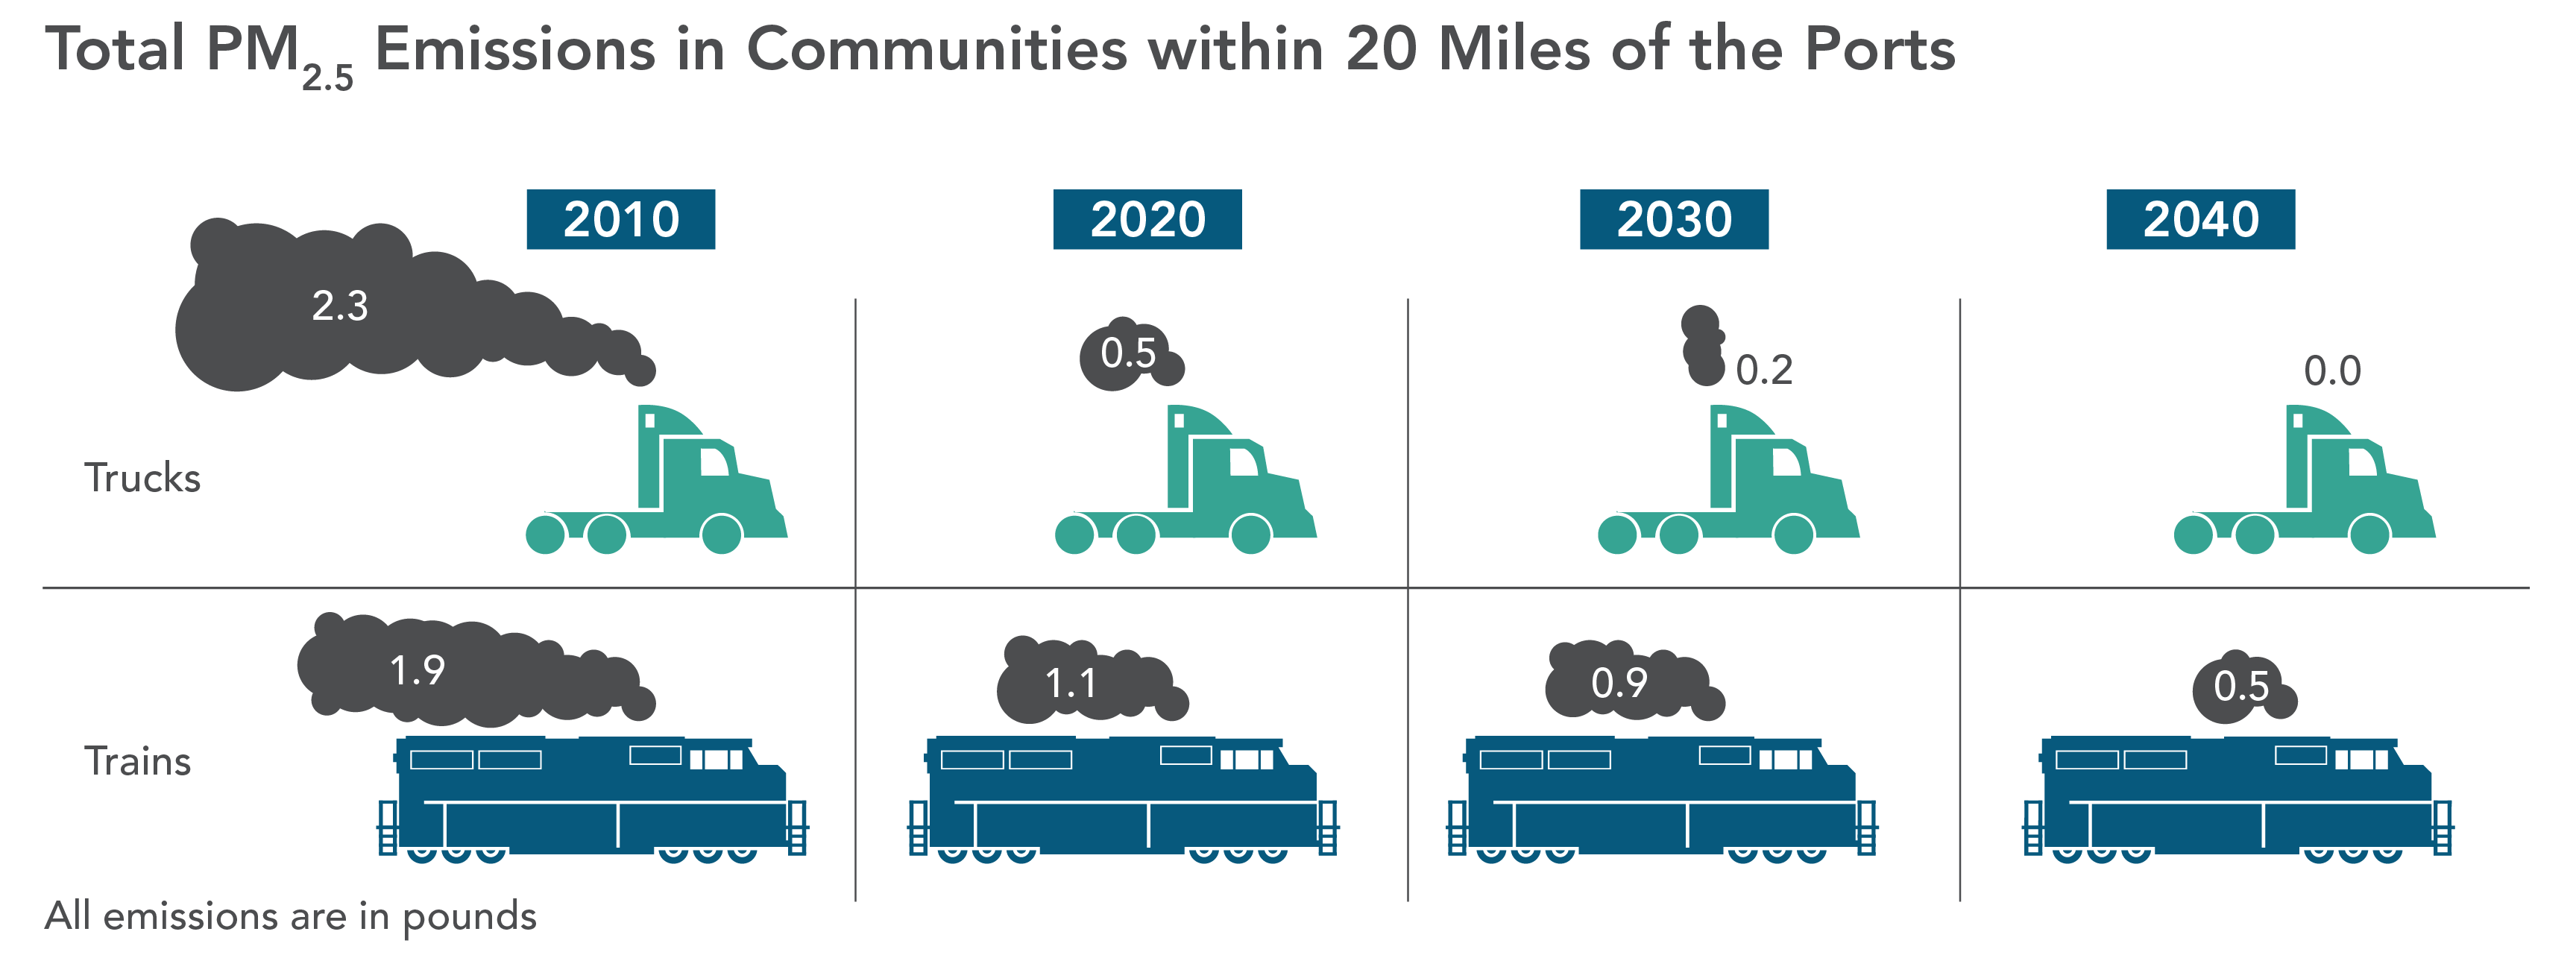 Comparison of truck and train PM 2.5 emissions in communities within 20 miles of the ports.  Trucks emit less PM 2.5 than trains in 2020.